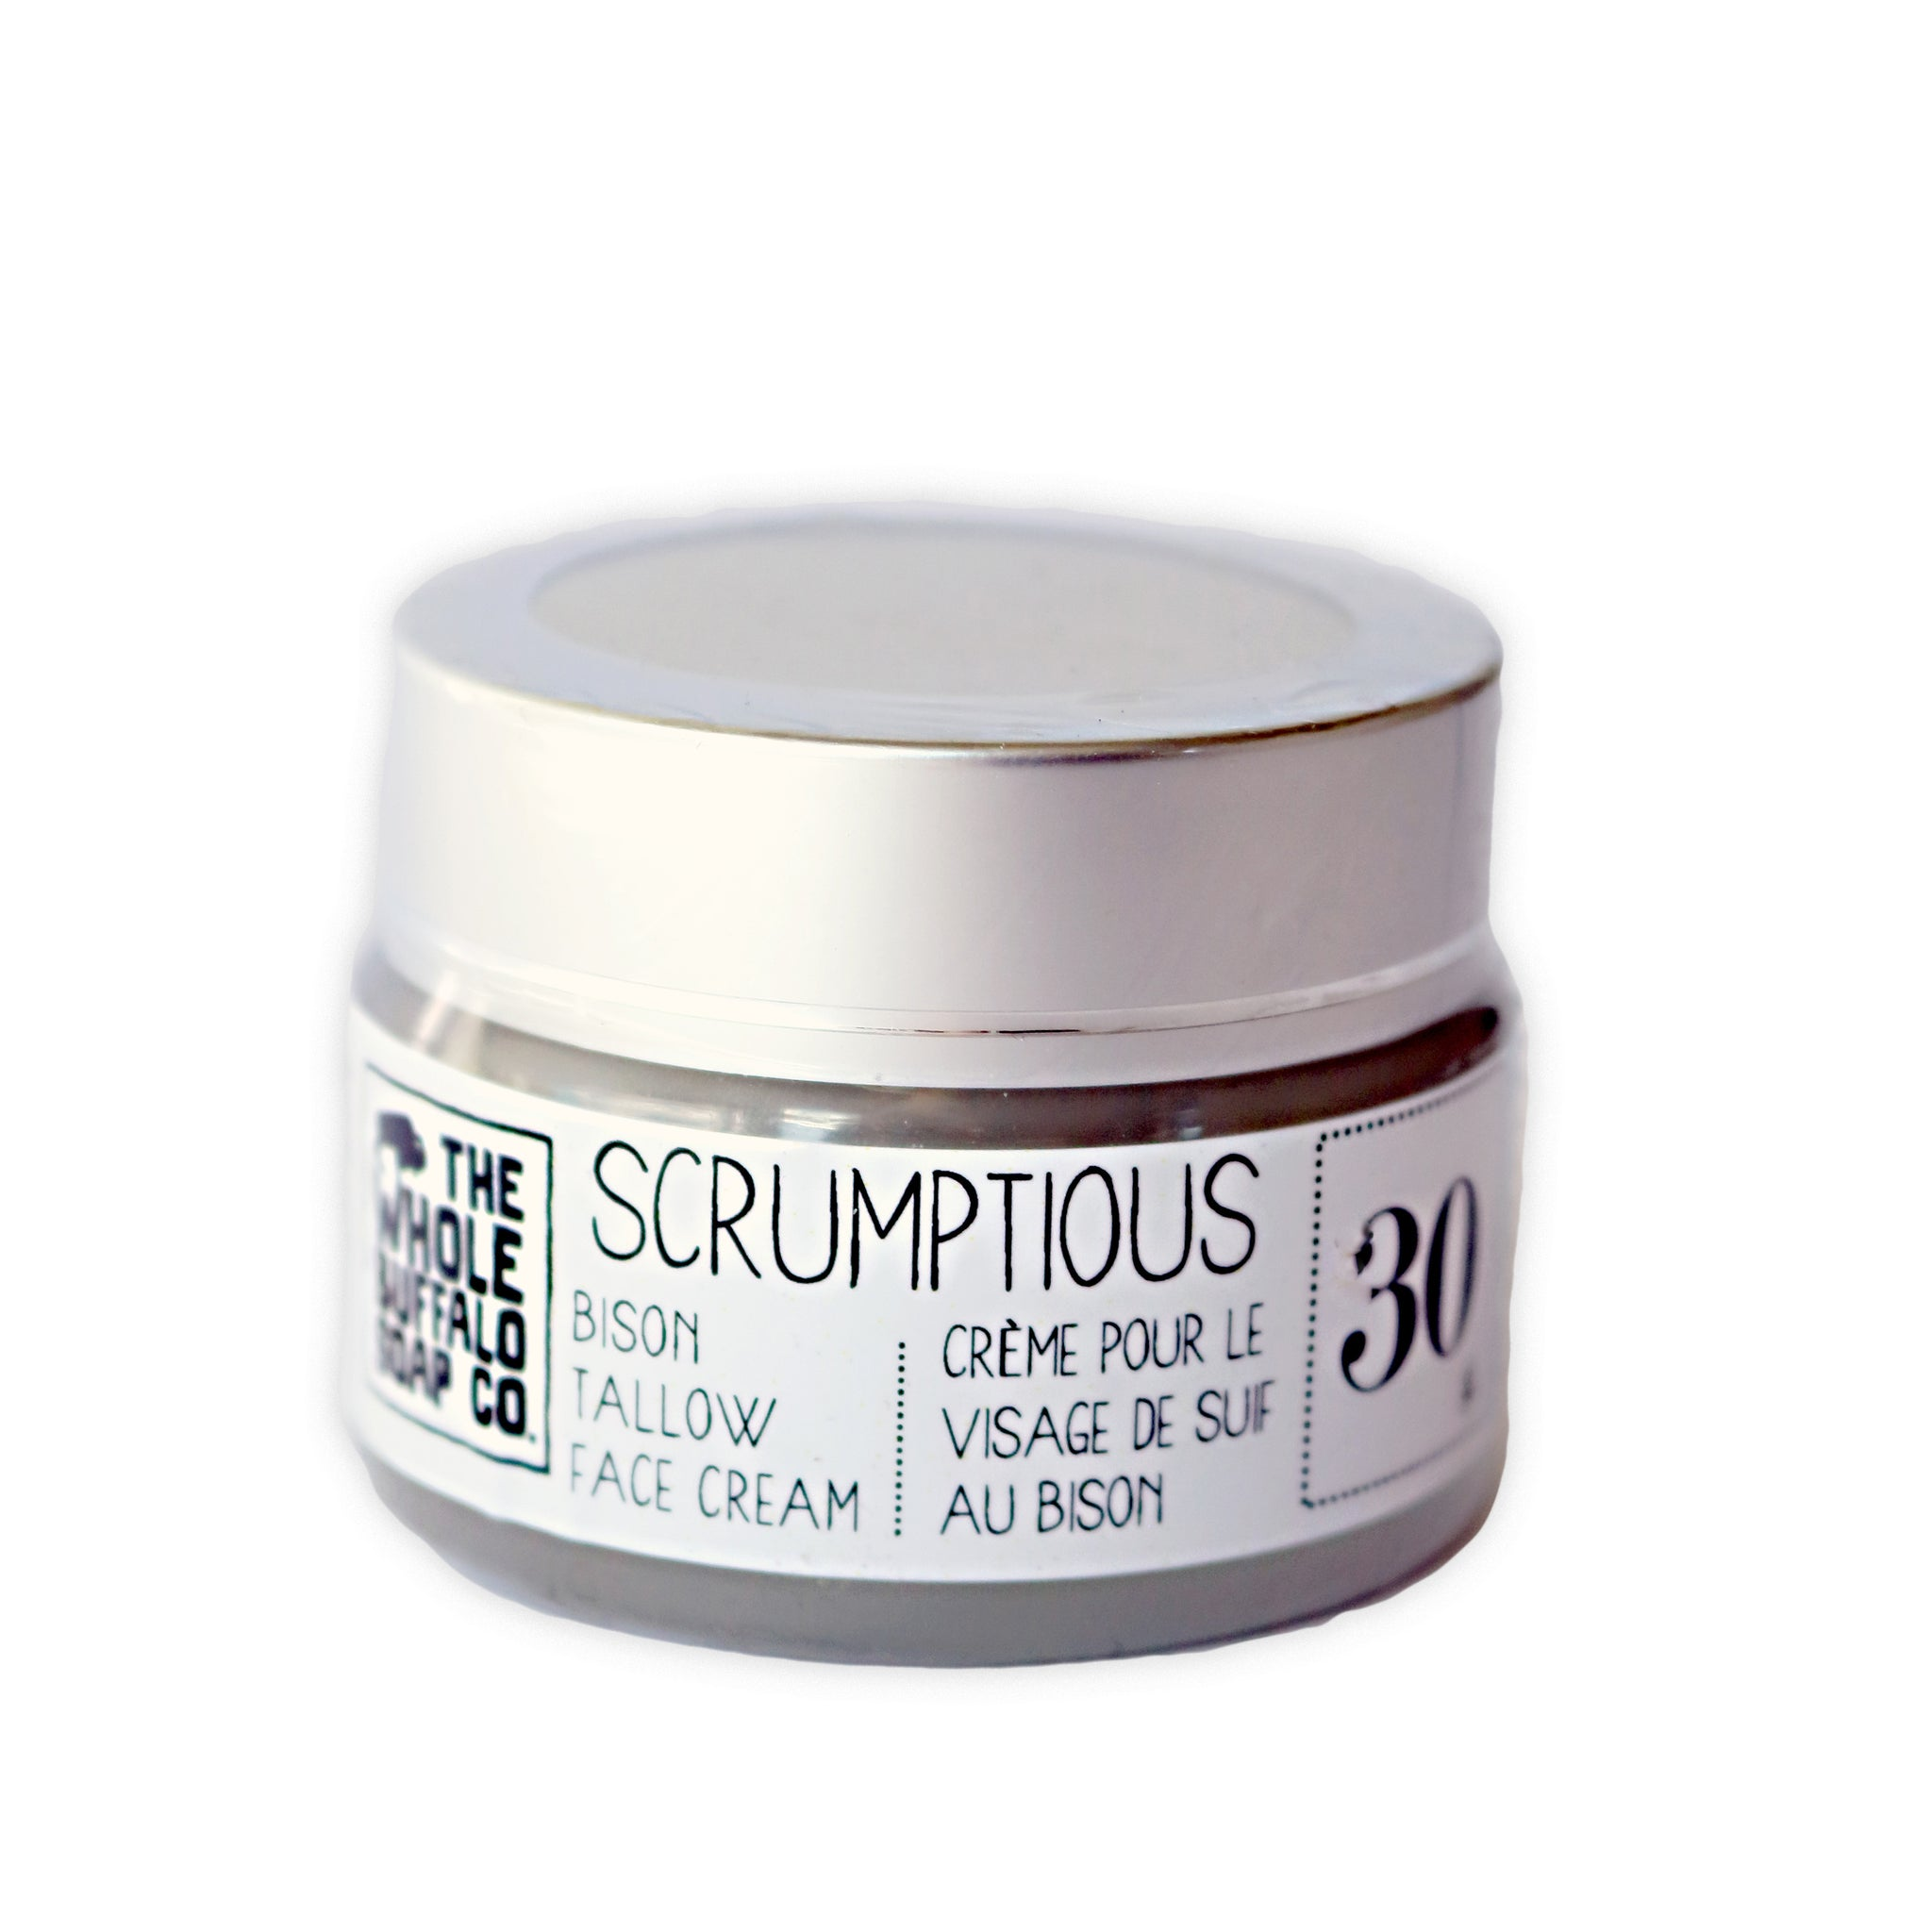 Scrumptious Face Cream